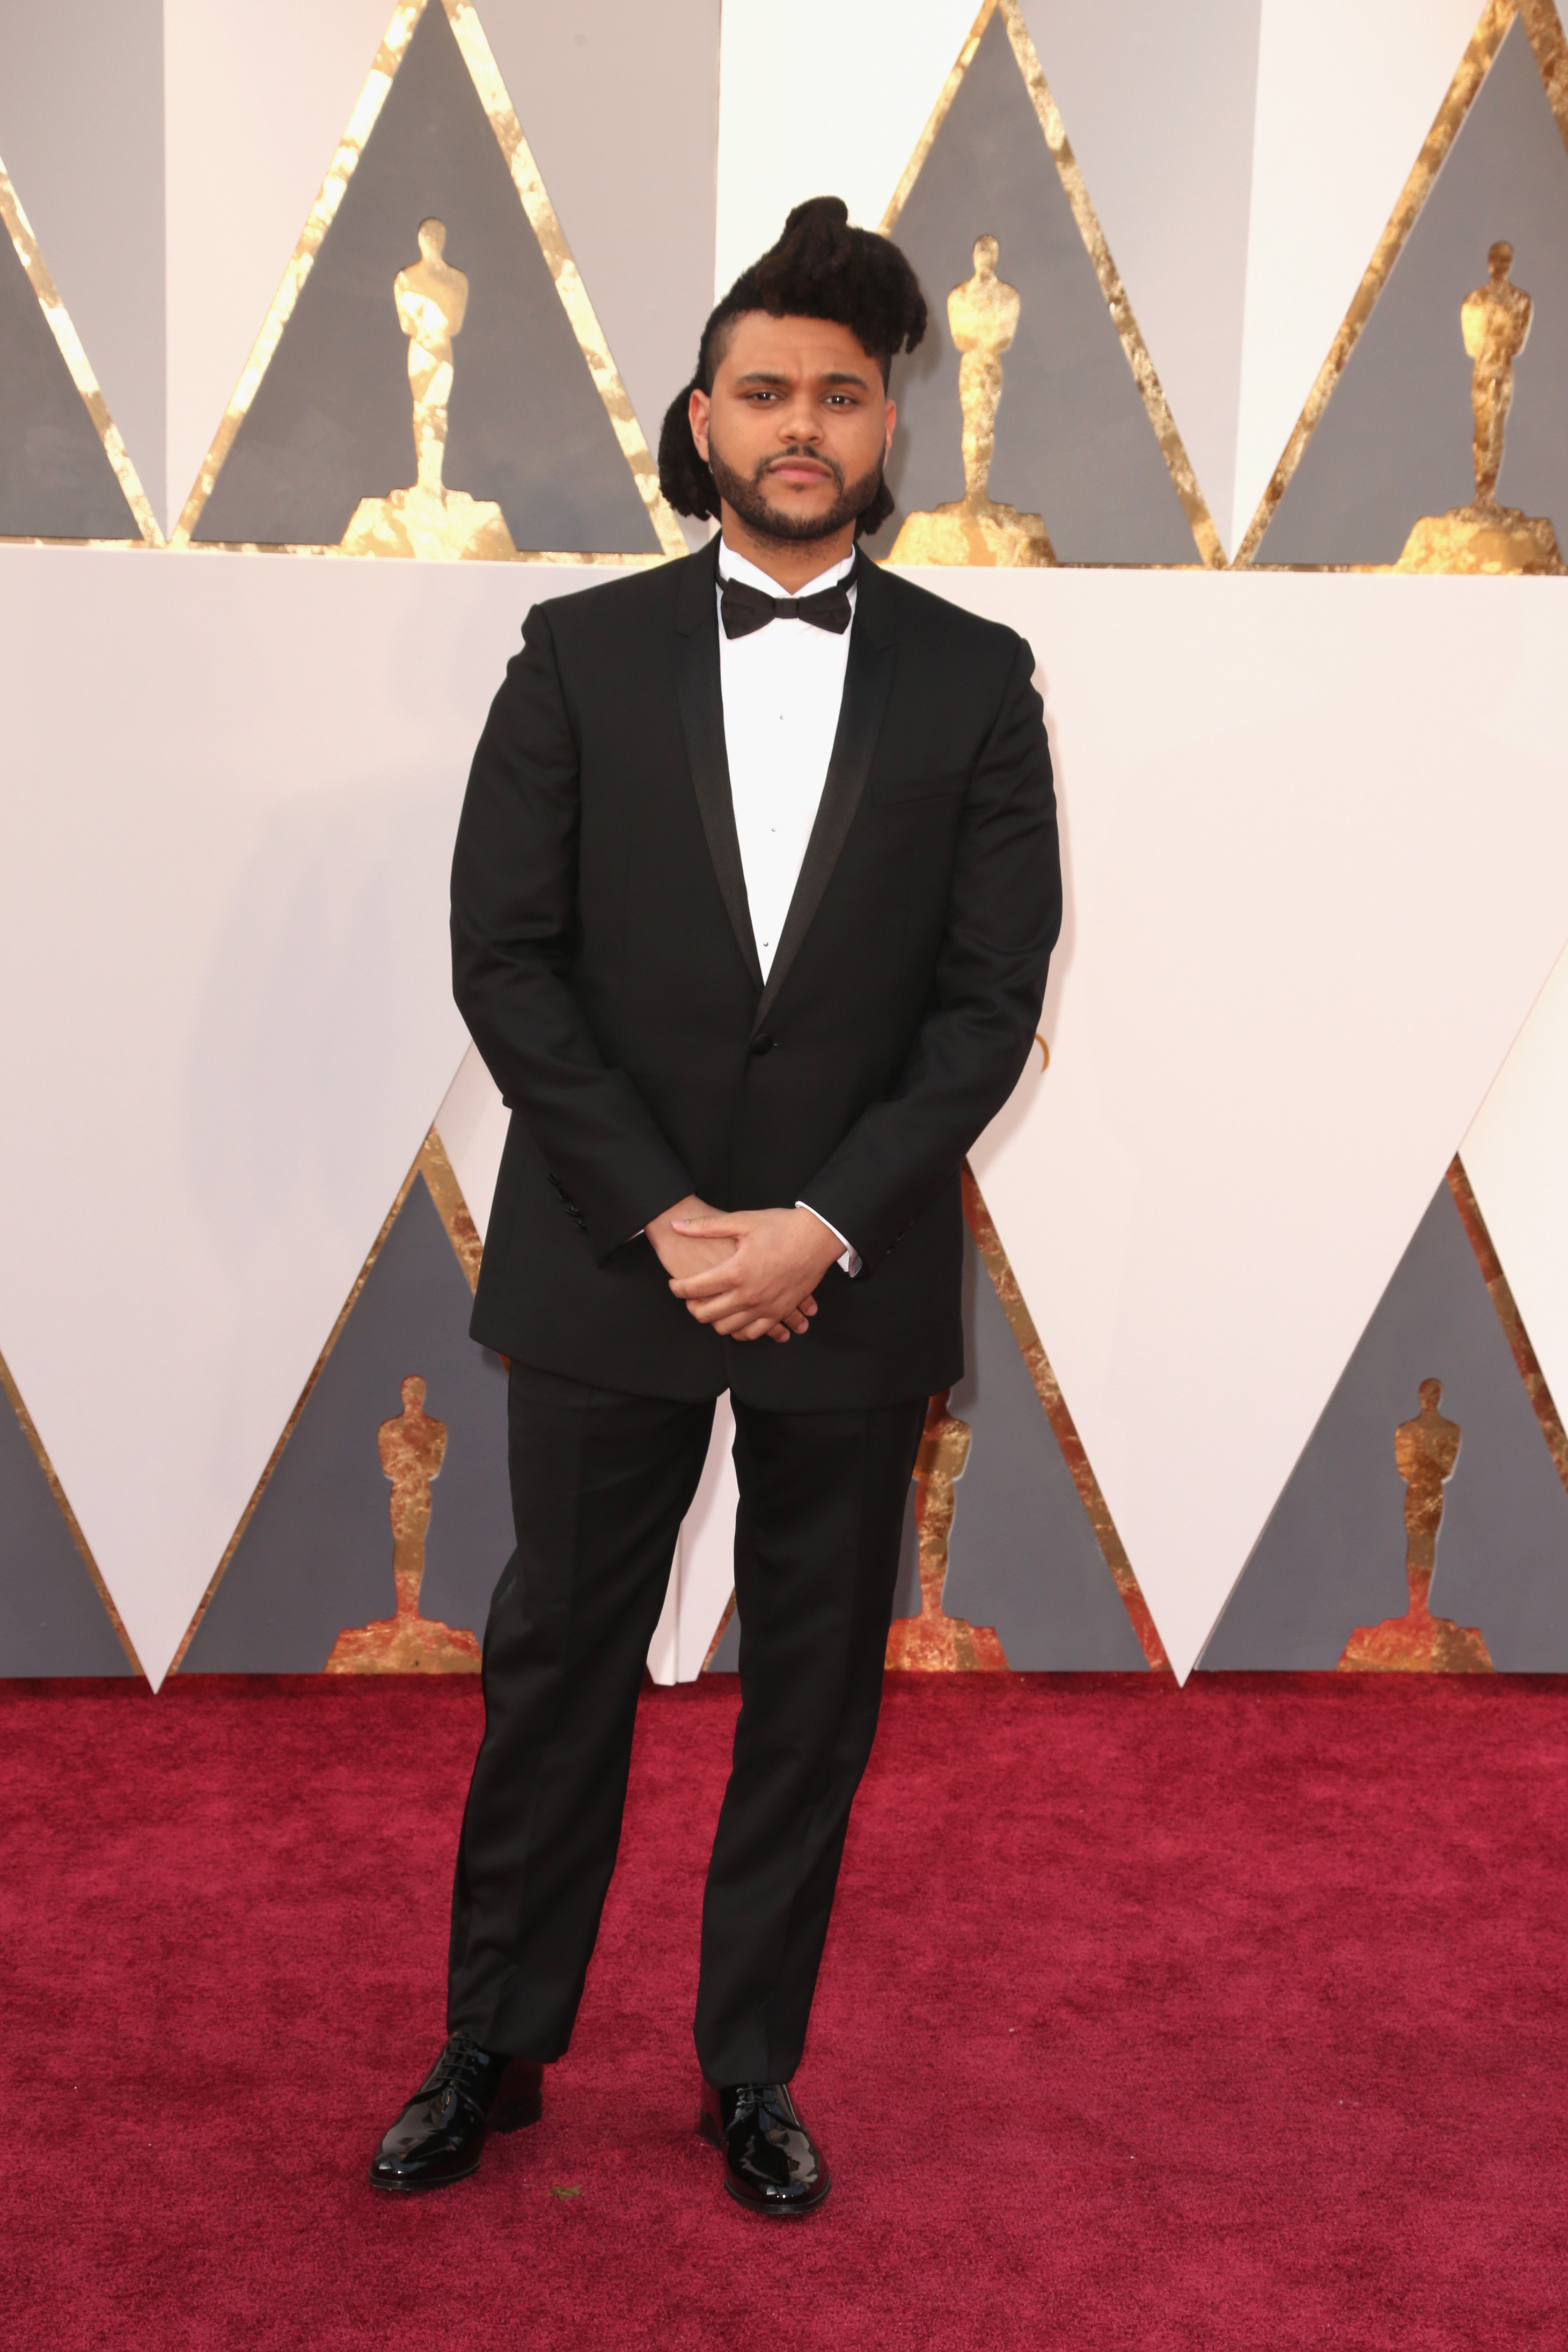 The Weeknd attends the 88th Annual Academy Awards on Feb. 28, 2016 in Hollywood, Calif.